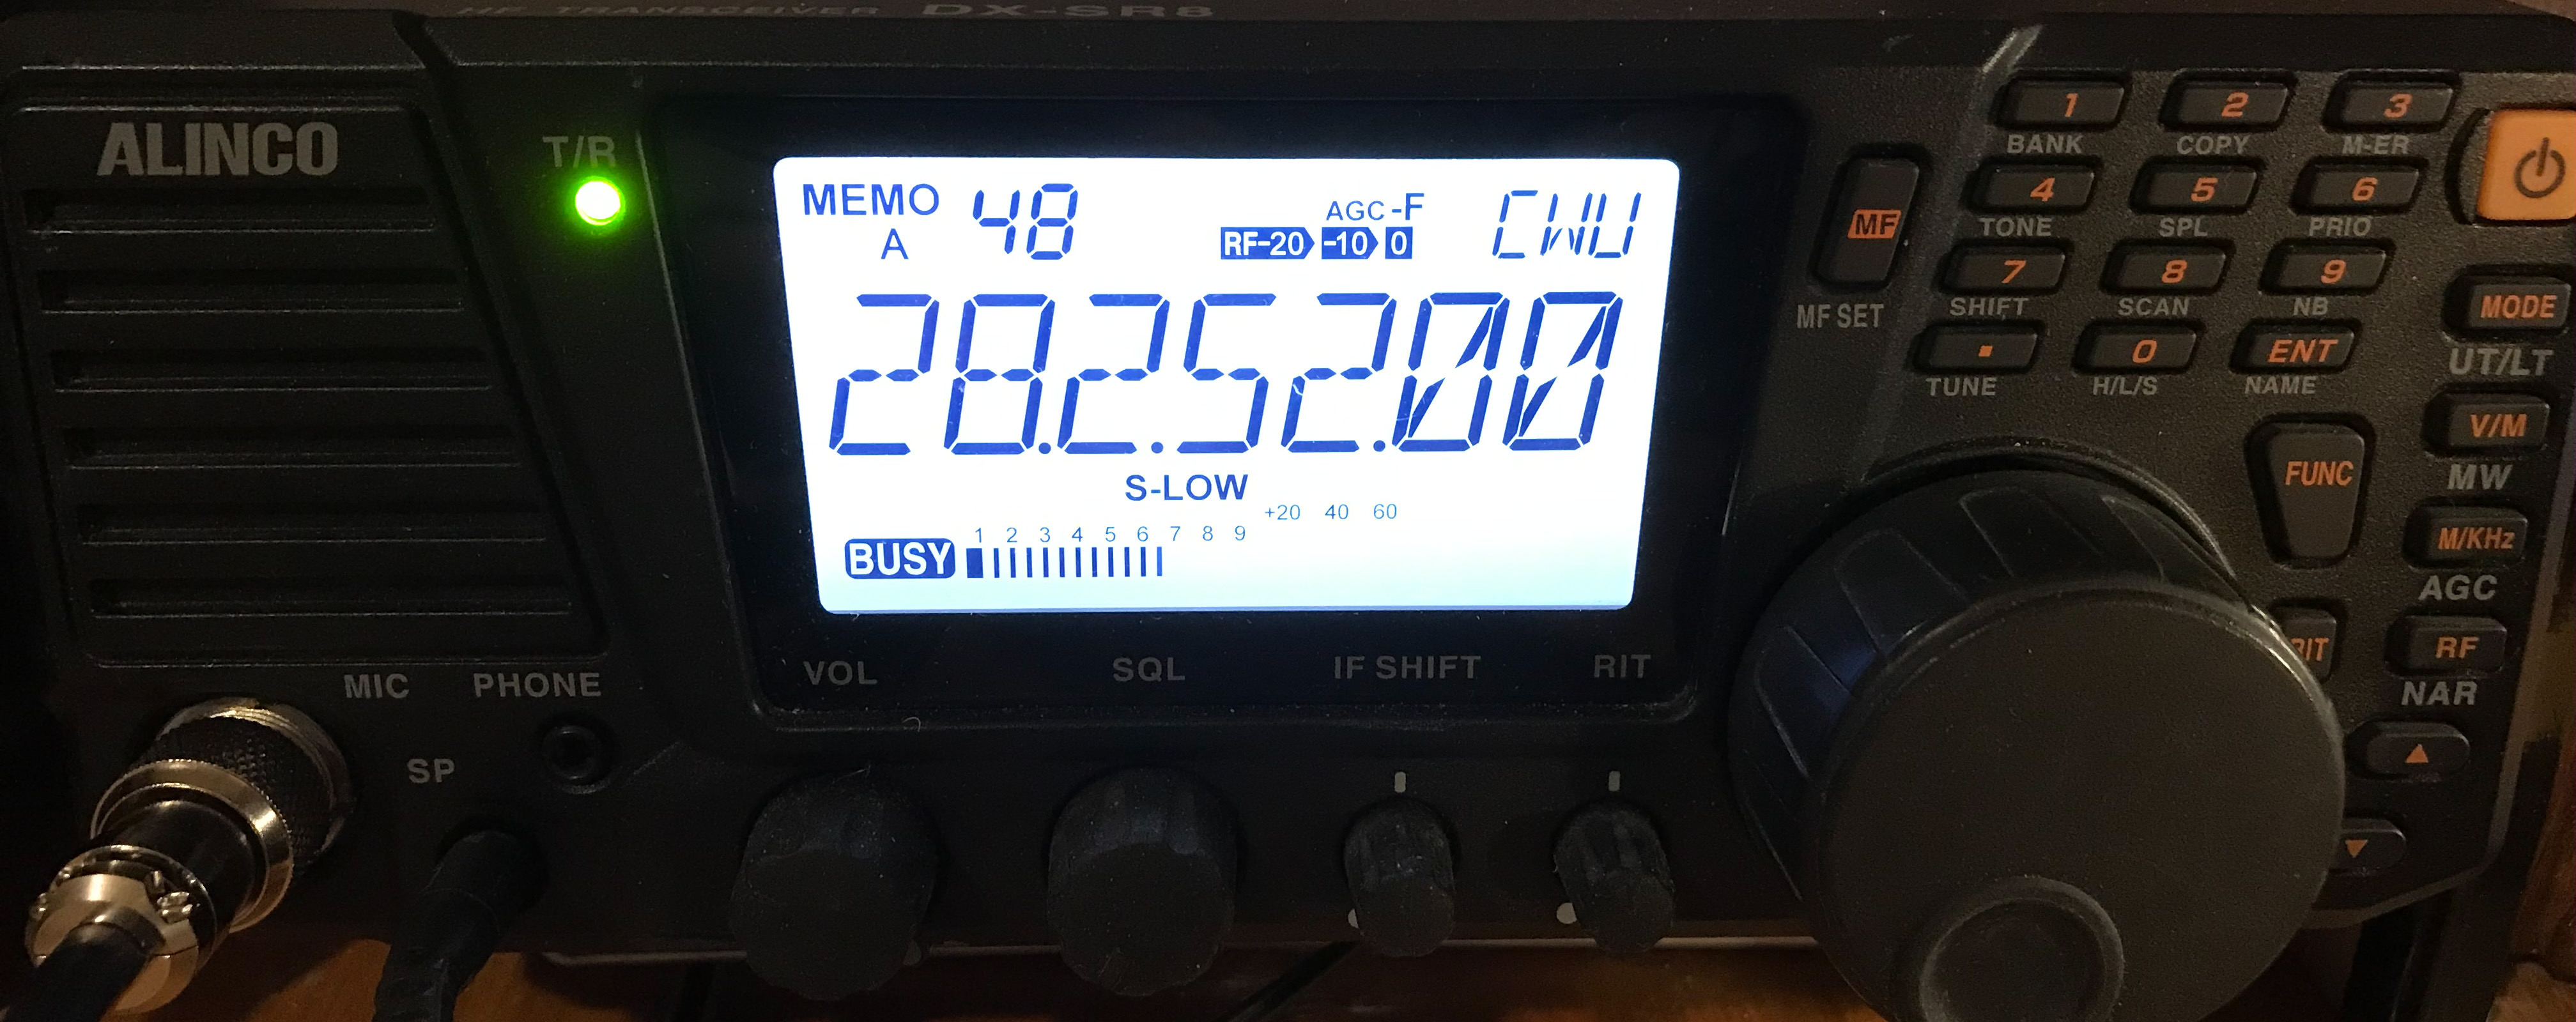 Alinco DX-SR8 transceiver